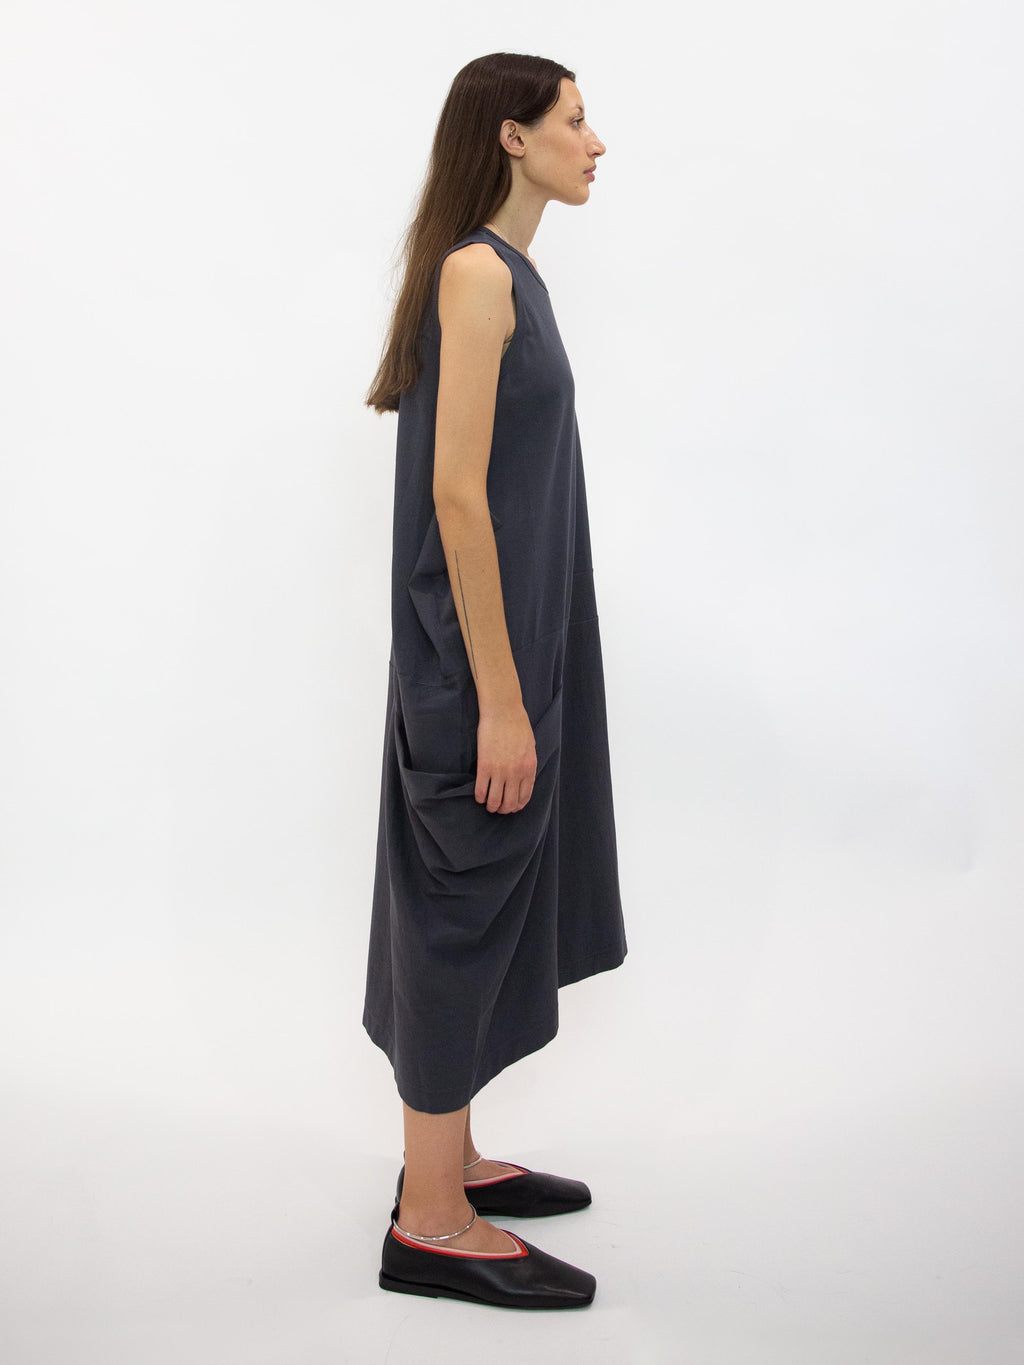 Panel Detail Sleeveless Tank Dress - Charcoal